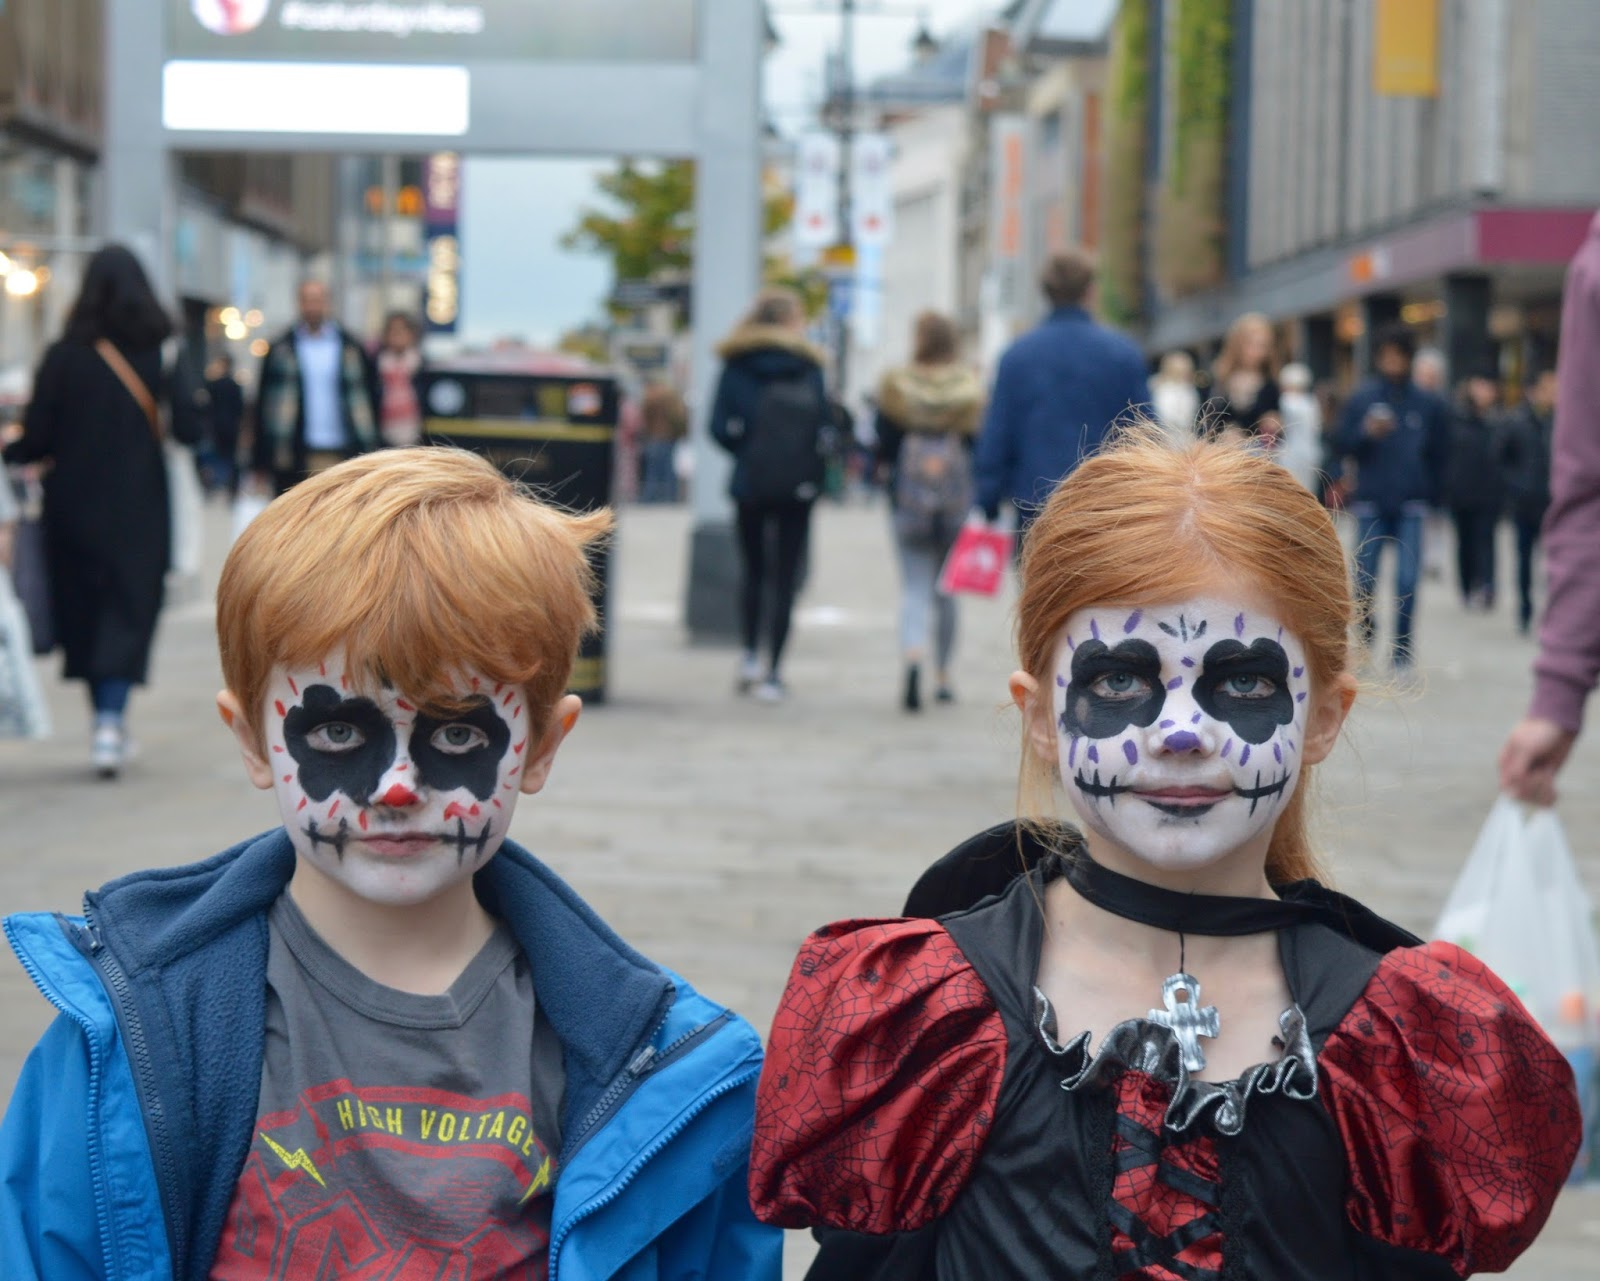 Juice Festival | Day of the Dead Family Celebrations at ¡Vamos! Social, Newcastle  - Northumberland Street